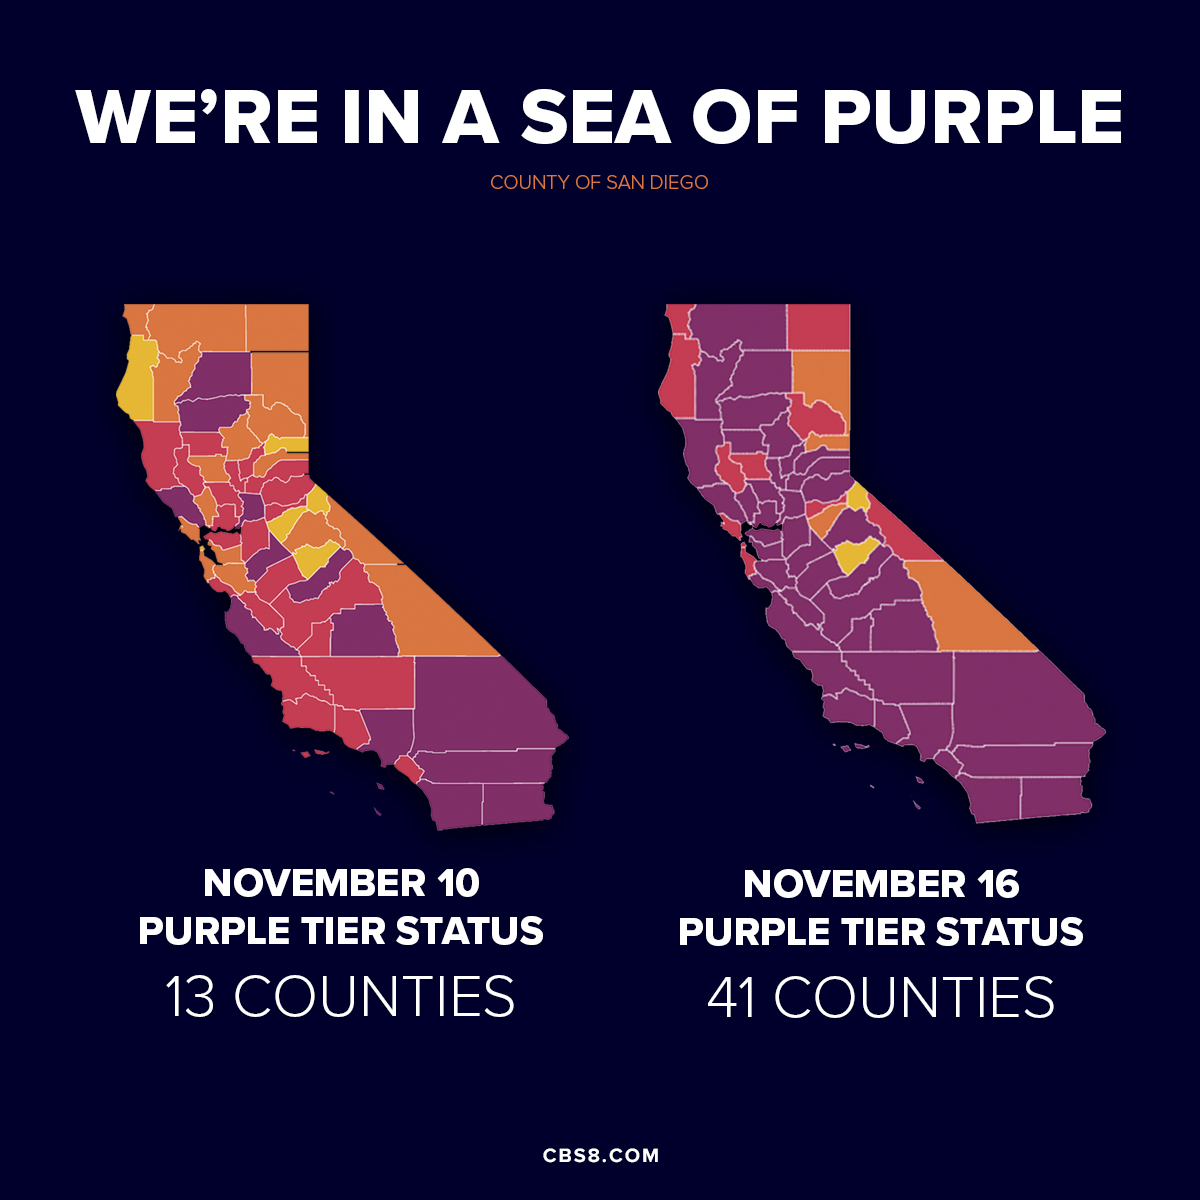 Cbs News 8 On Twitter San Diego Is Not Alone With Its Climbing Covid 19 Case Rate California Saw Counties In The Most Restrictive Purple Tier Go From 13 To 41 In Just